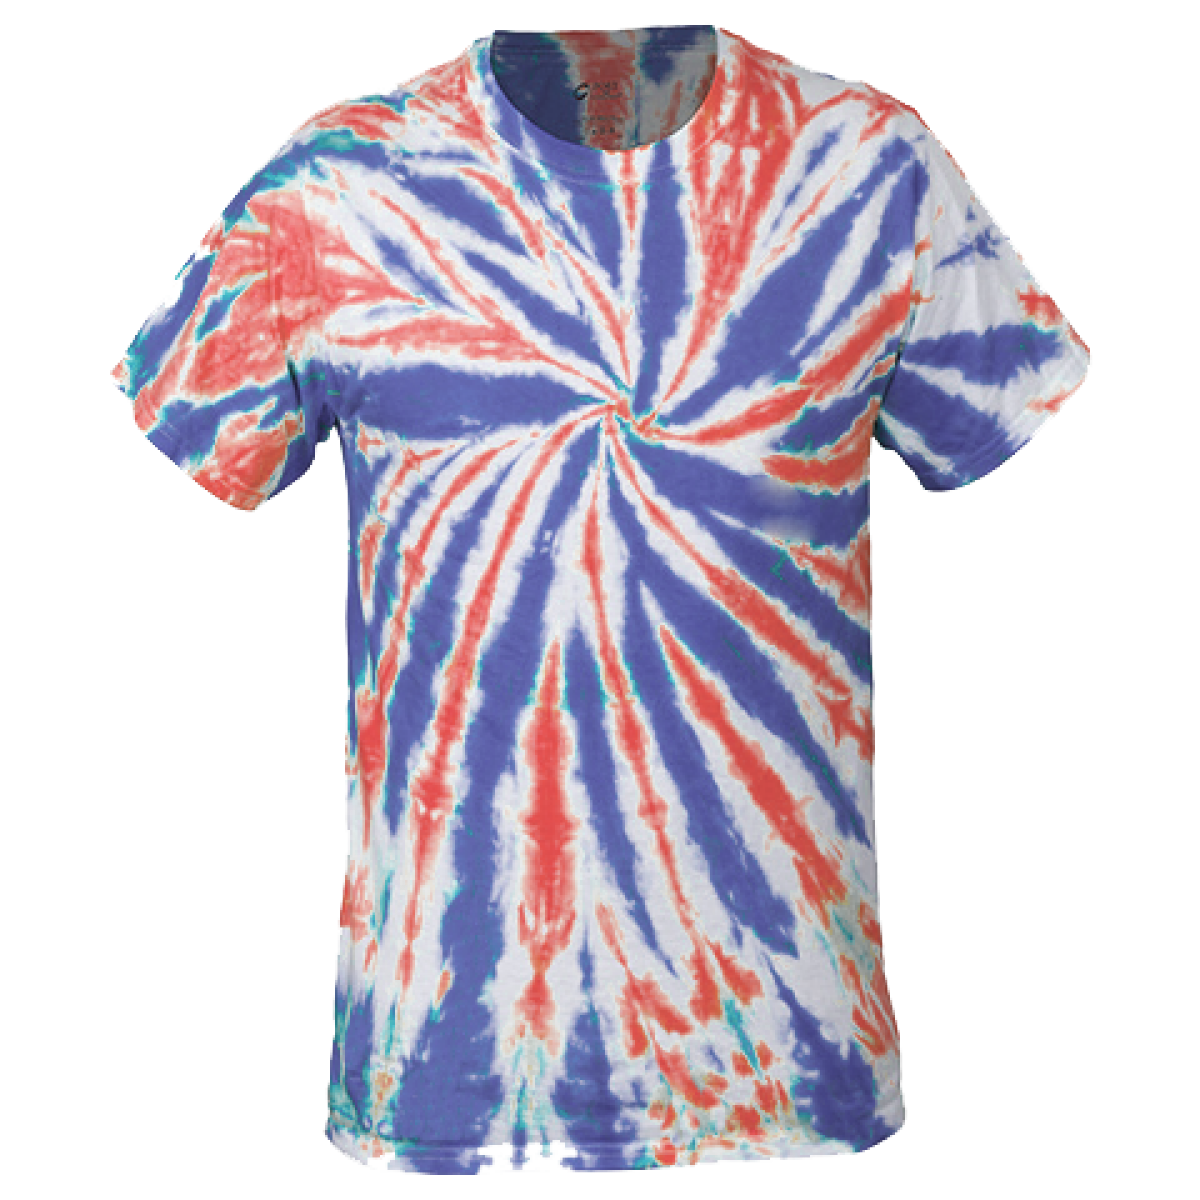 Multi-Color Tie-Dye Tee -Red/White/Blue-YM